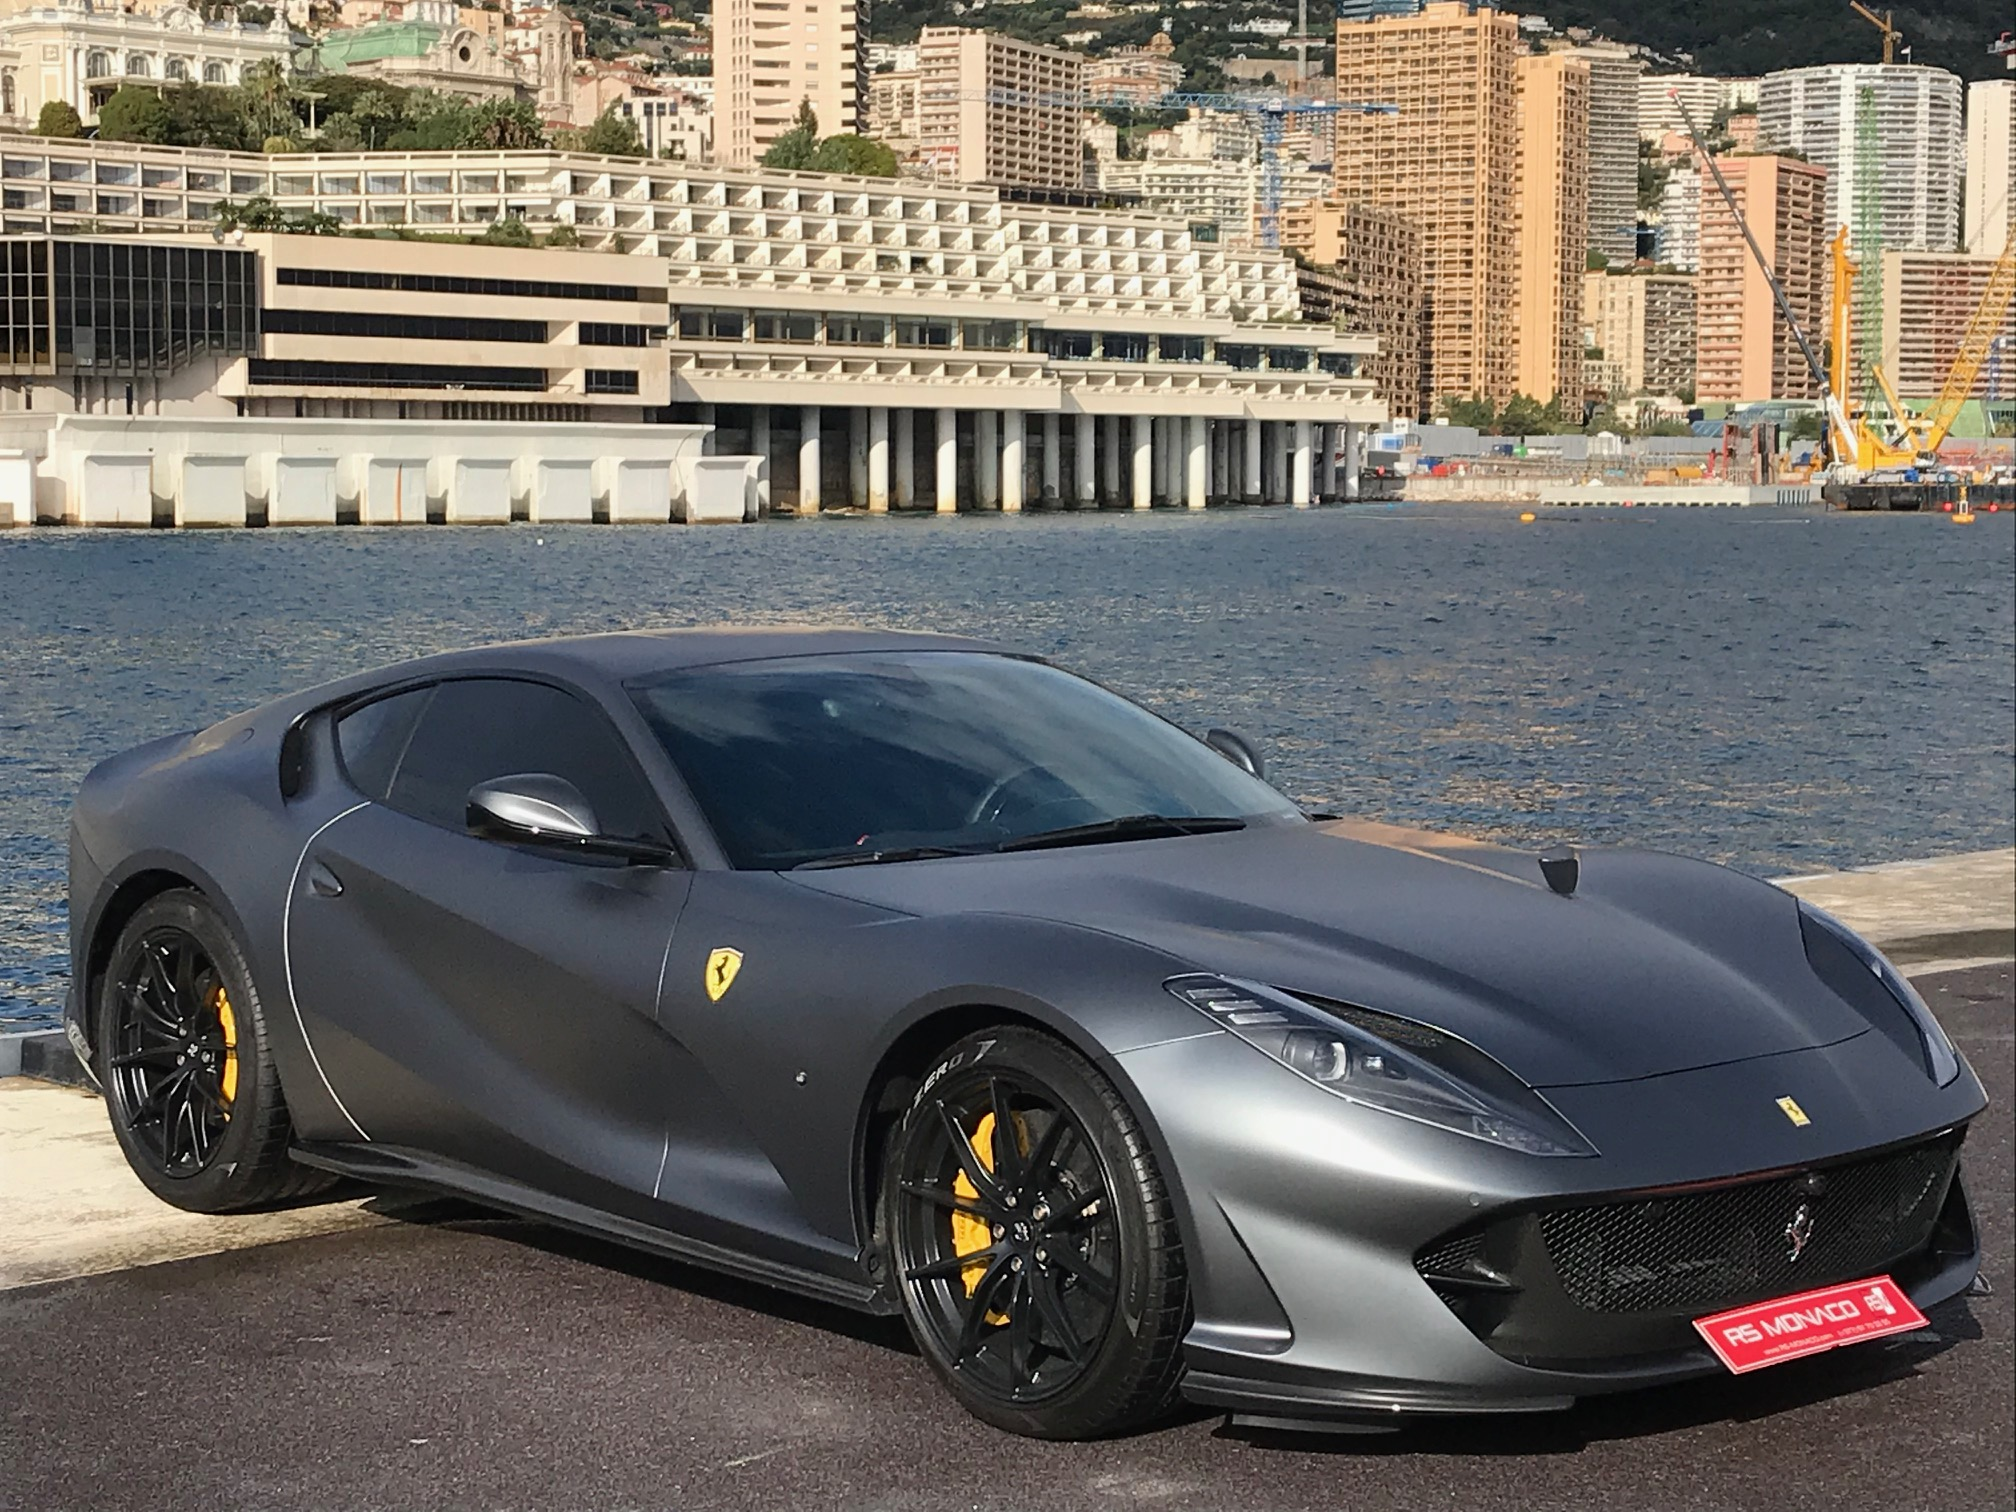 FERRARI 812 6.5 V12 SUPERFAST